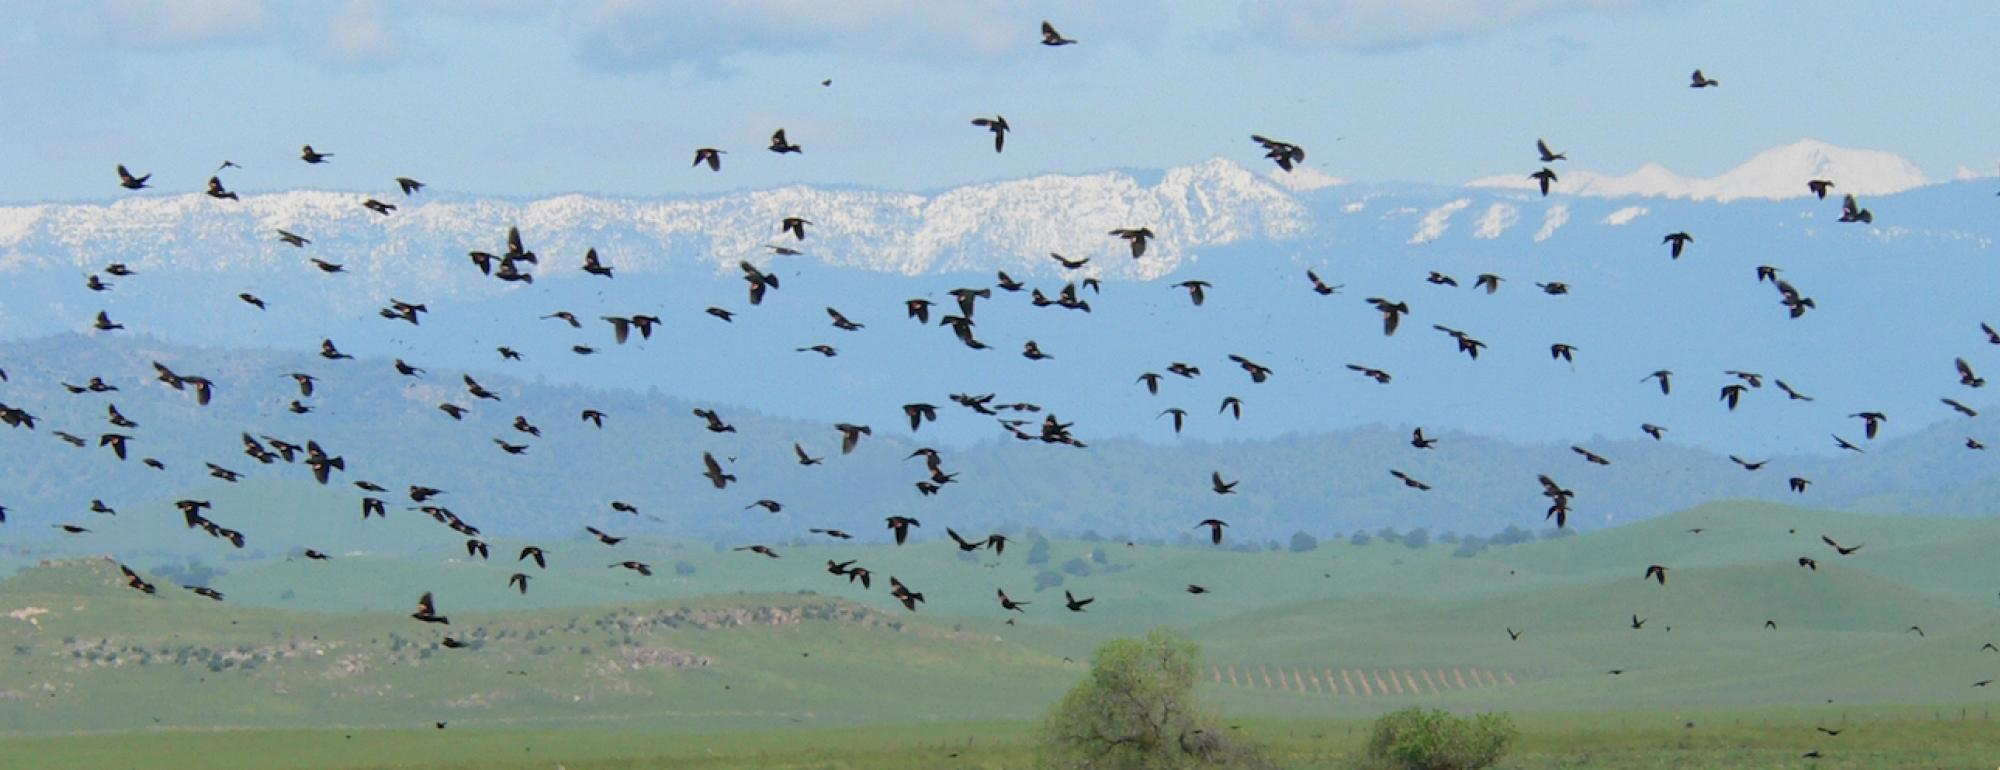 A flock of Tricolored Blackbirds flying over California meadows with the Sierra mountain range in the background